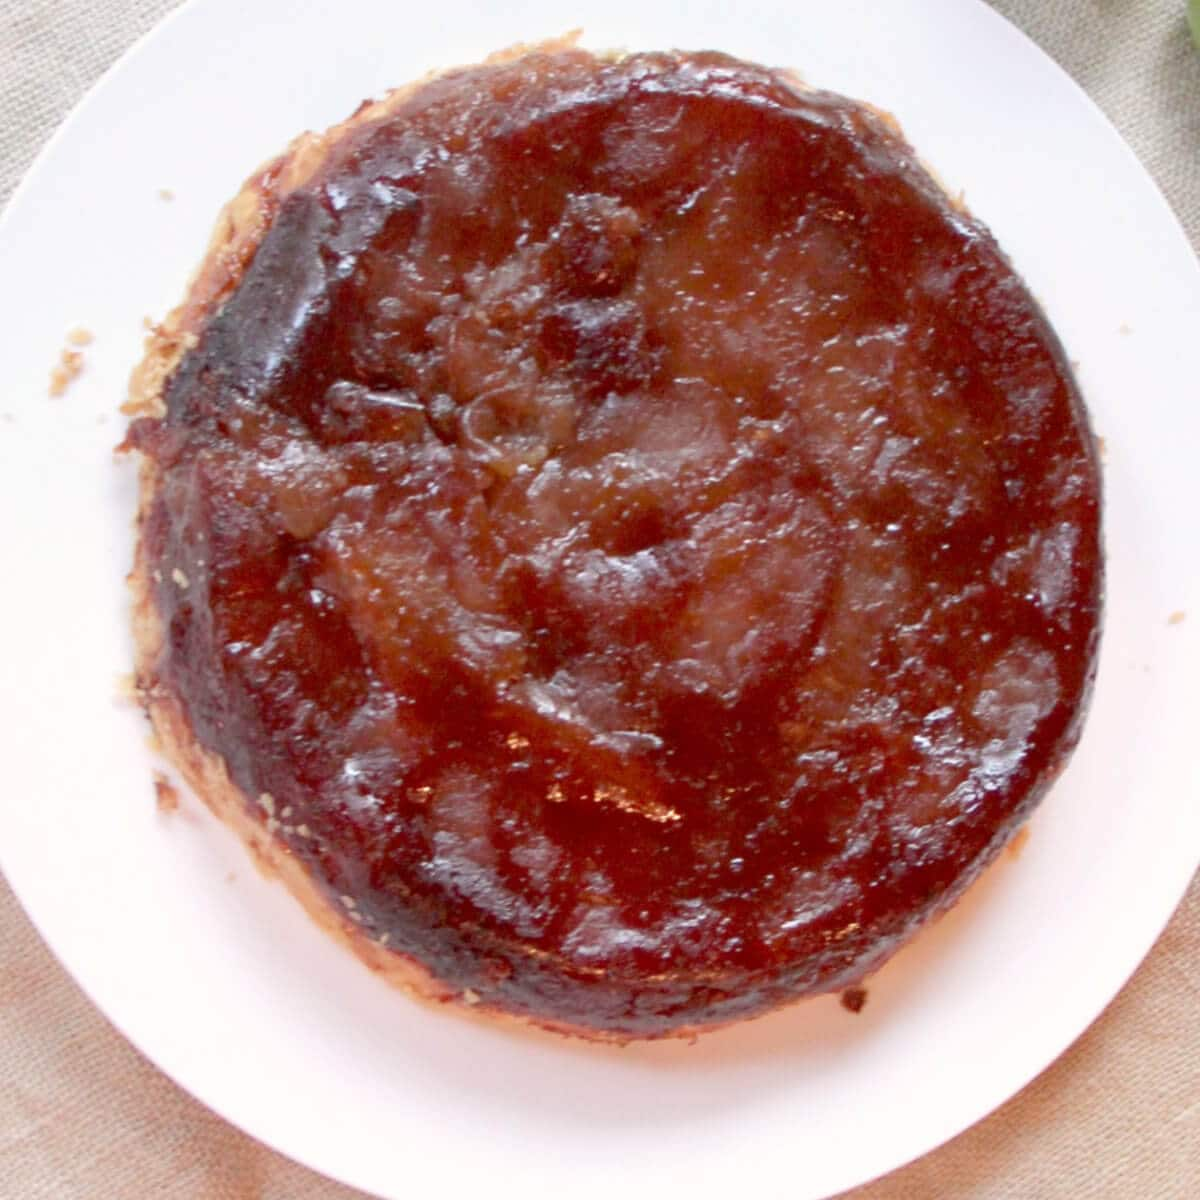 A whole apple tarte tatin on a white plate.